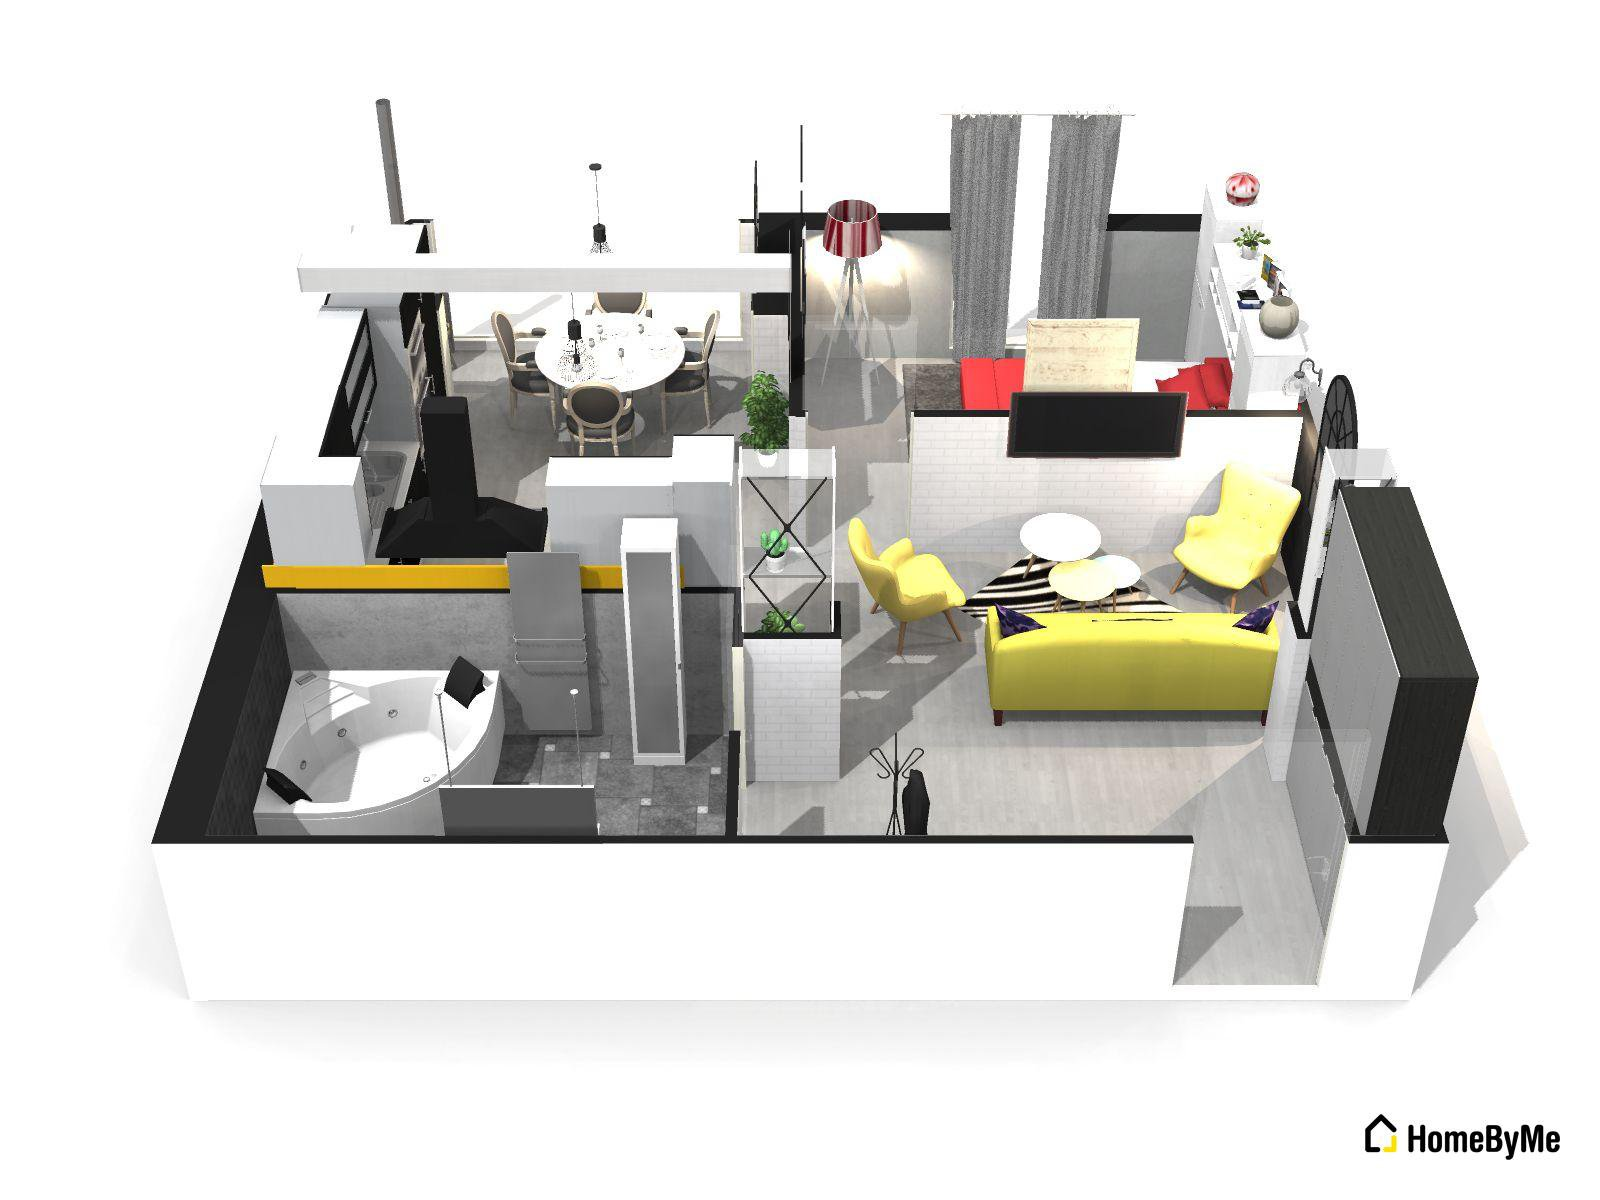 Home by me: design your home in 3D